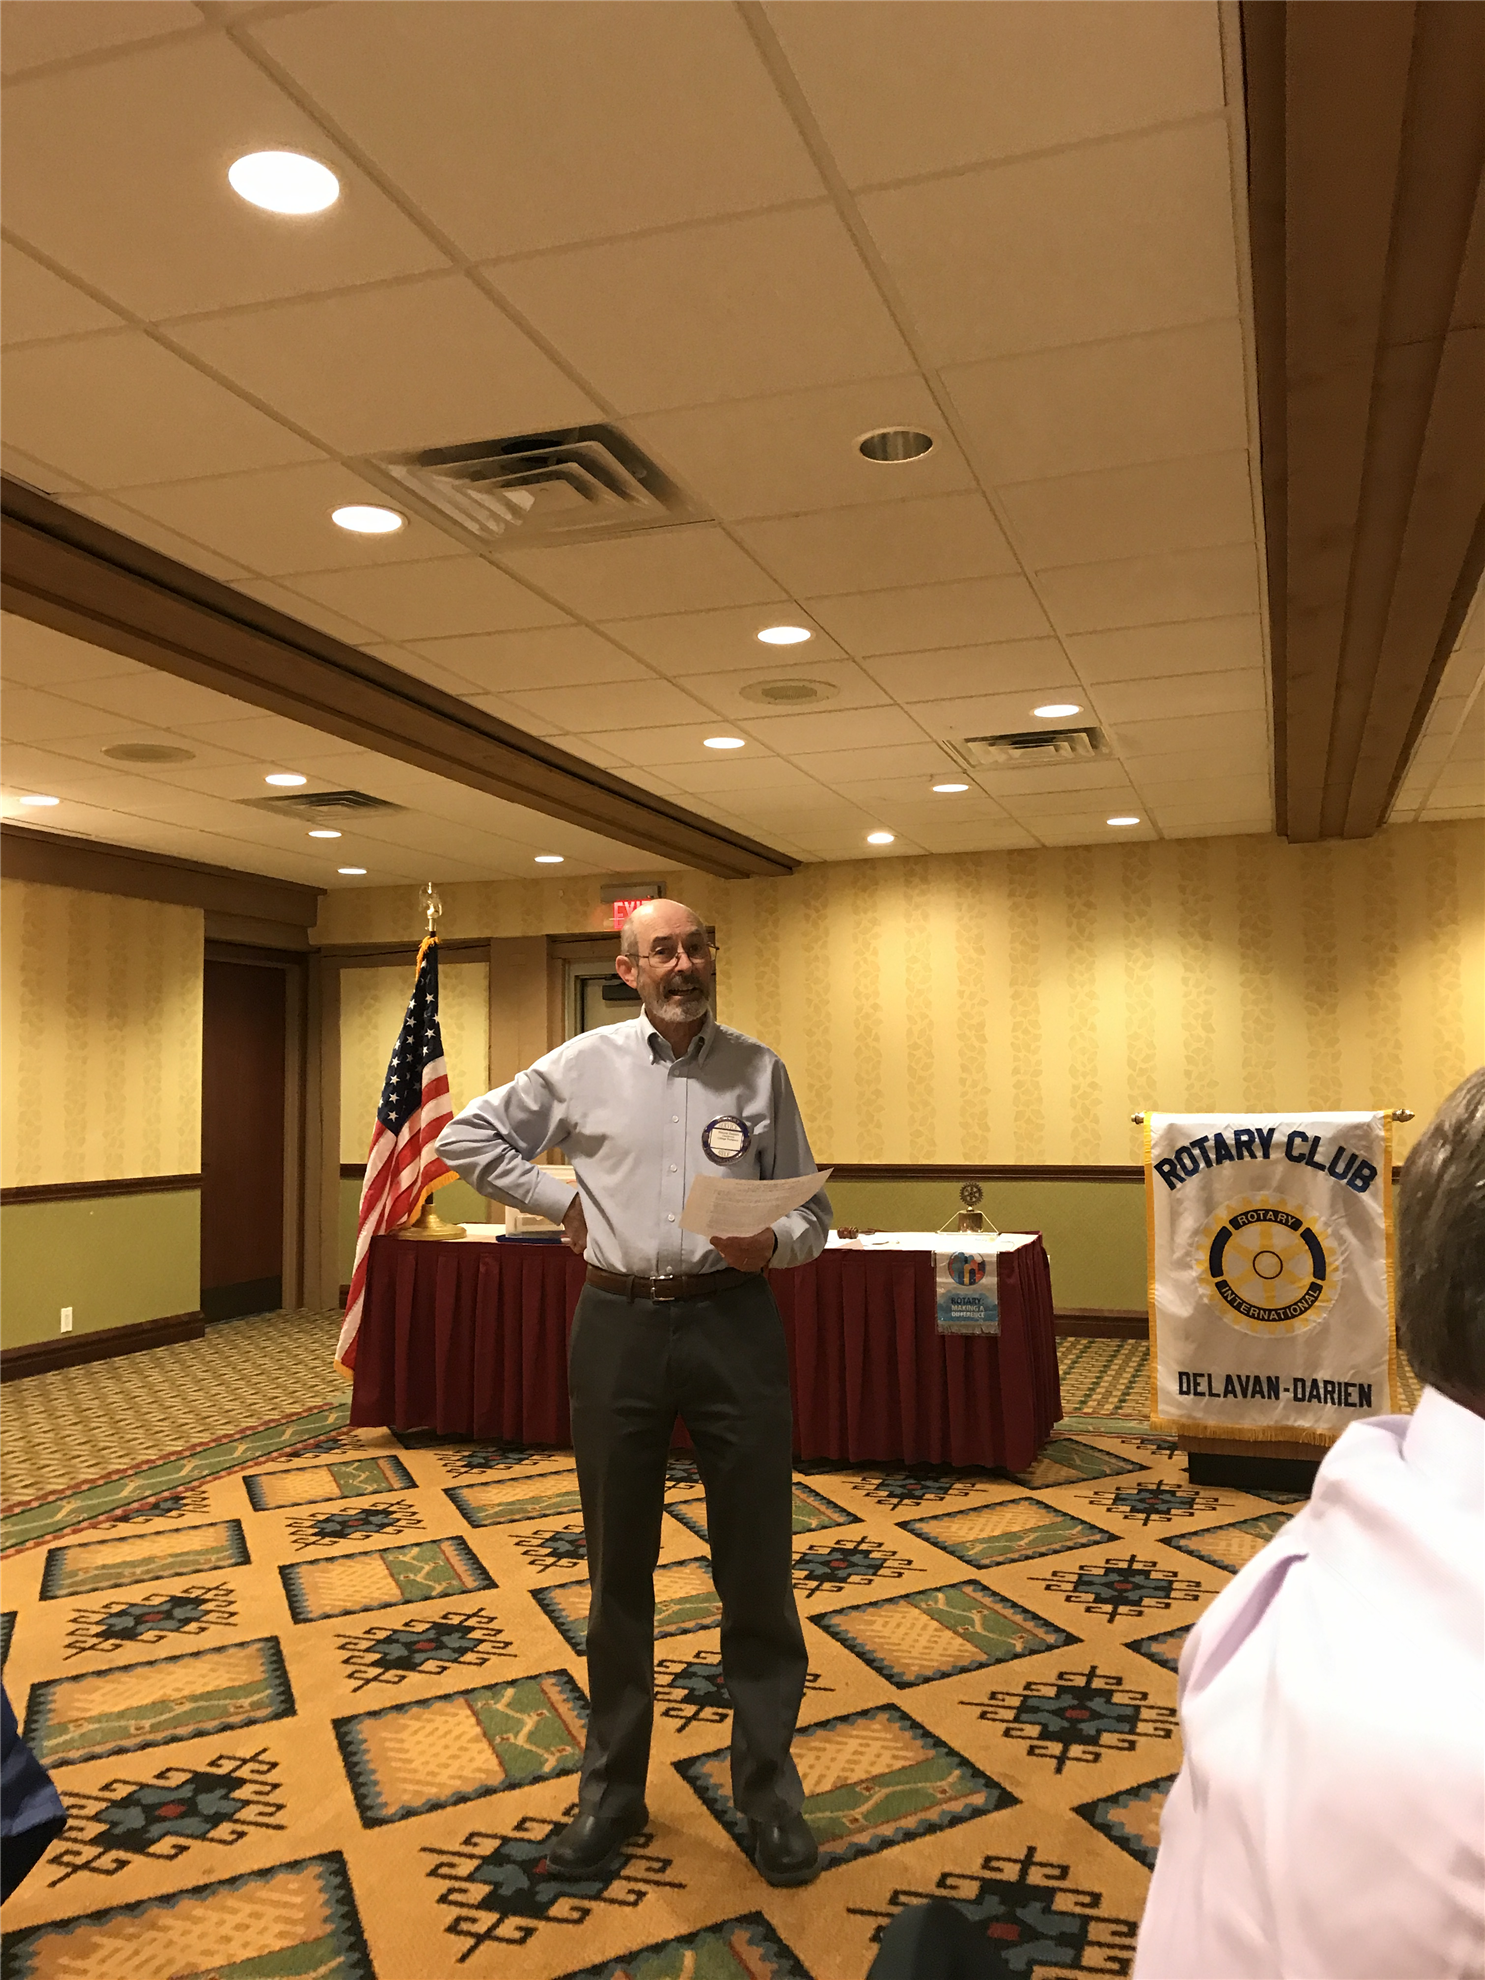 Stories Rotary Club Of Delavan Darien 1100 Lt 20 Special Field World39s Largest Supplier Firearm Topics Discussed Included Plans For The 2017 18 Year How To Attract More New Members And Successful Spaghetti Dinner On April 25th